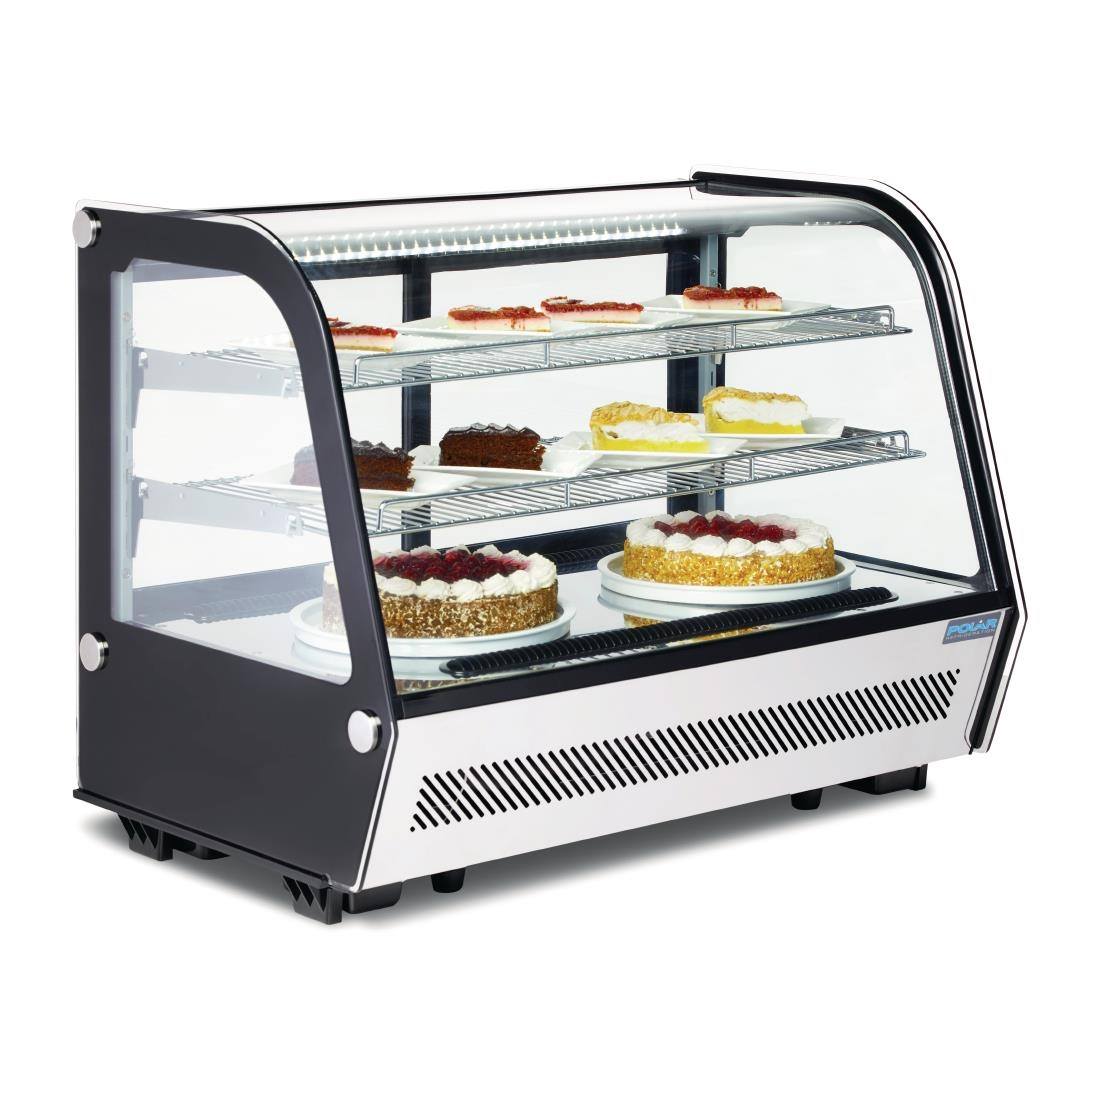 bakery black impulse display case structural doors countertop swinging concepts with pastry countertops rear